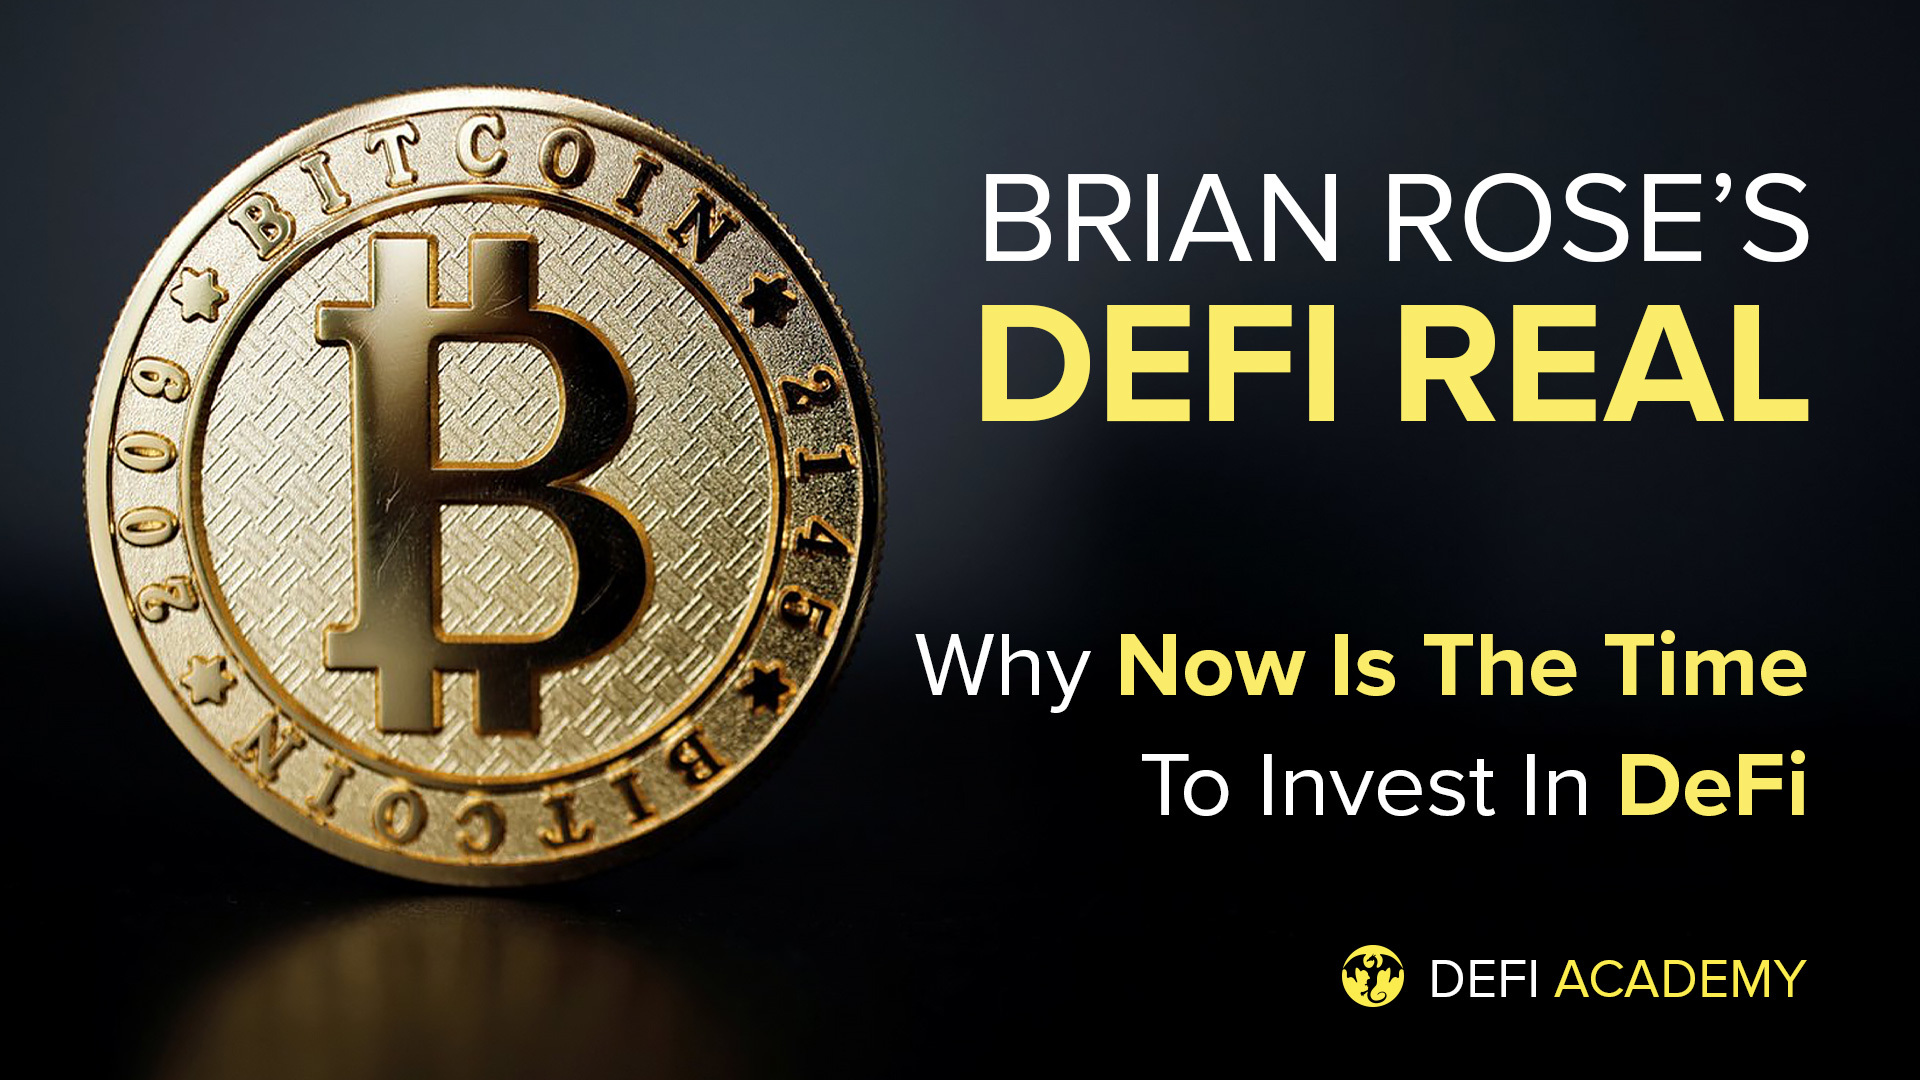 DeFi Real - Crypto Is Crashing: Why Now Is The Time To Invest In DeFi